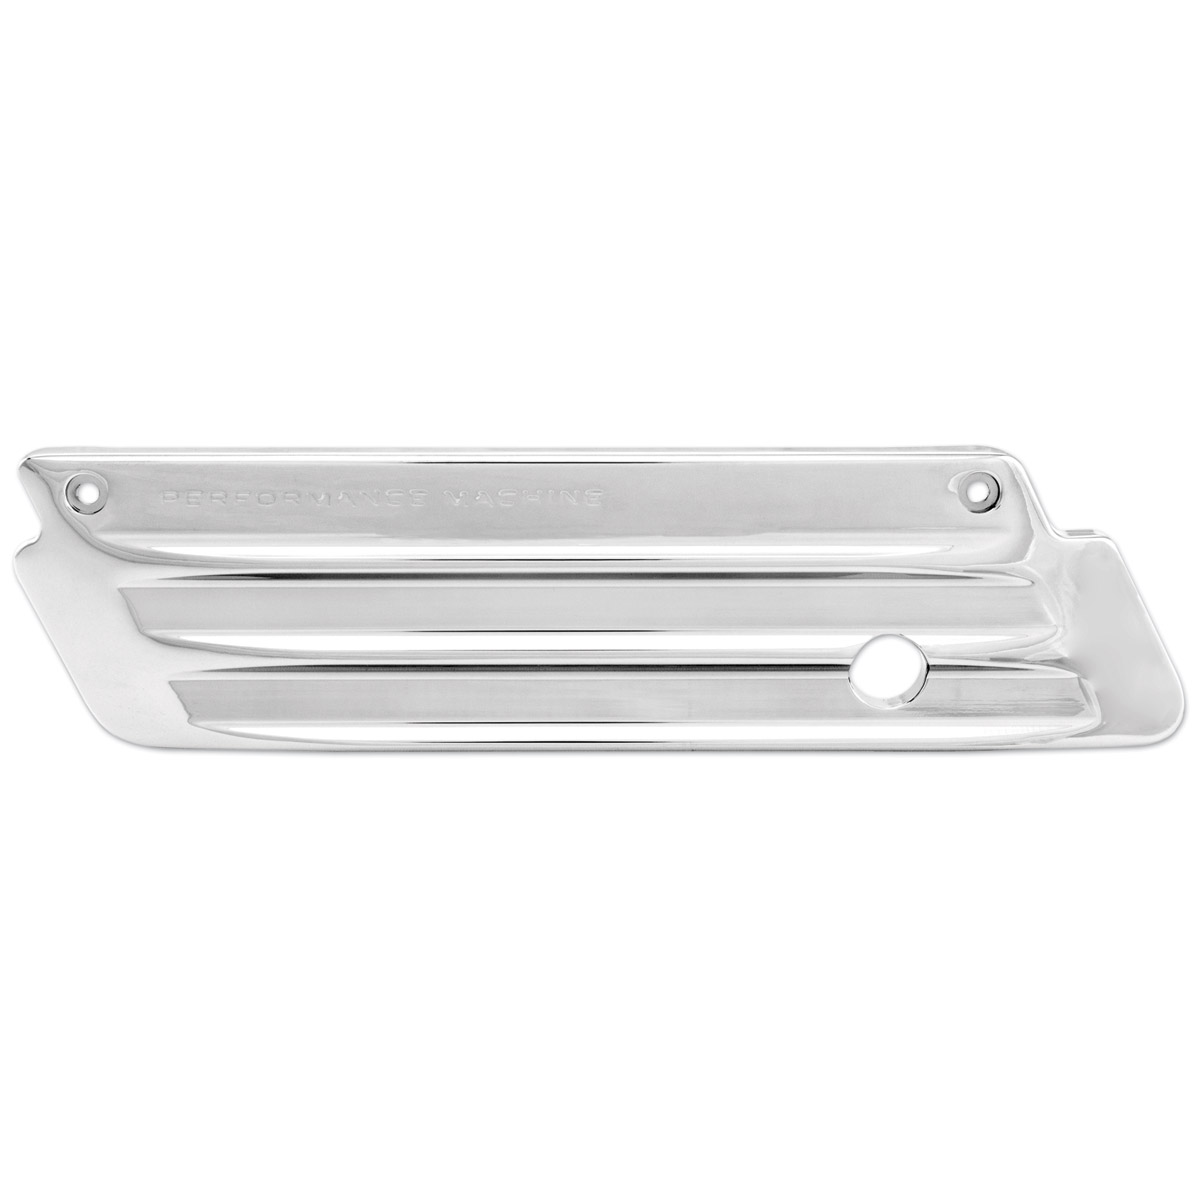 Performance Machine Chrome Drive Saddlebag Latch Cover